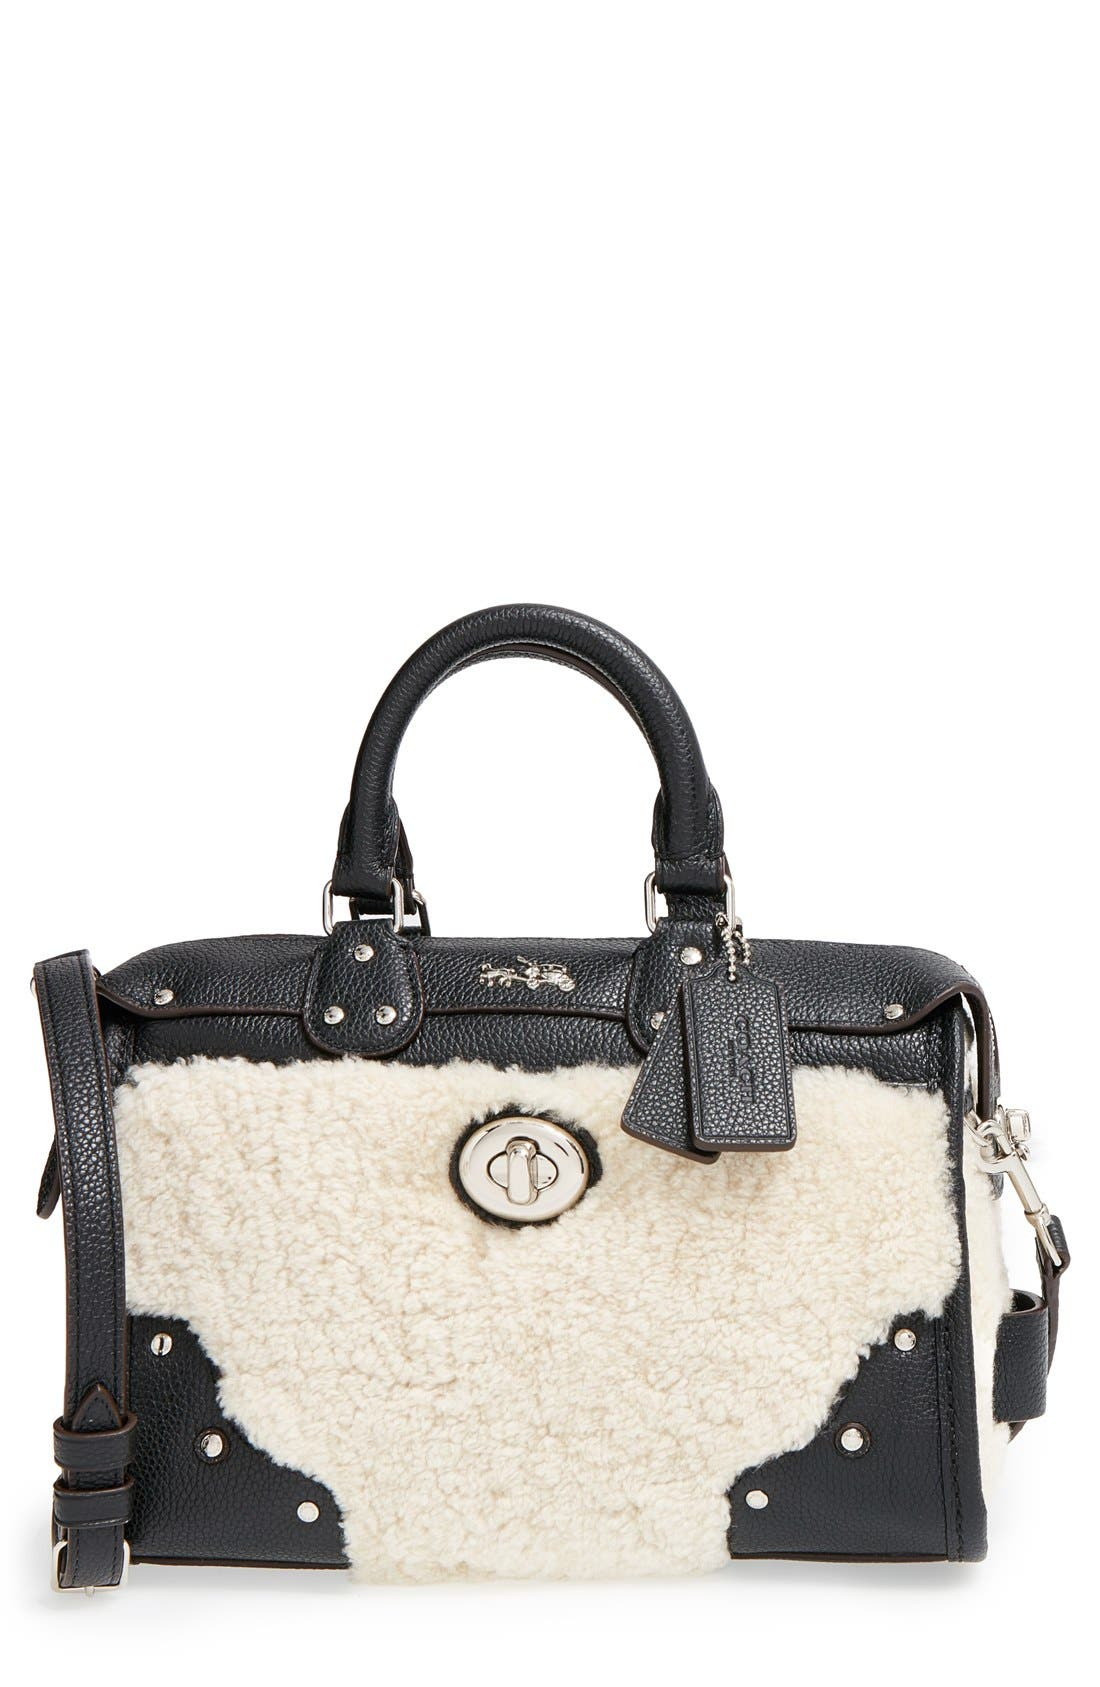 COACH 'Rhyder 24' Genuine Shearling & Leather Satchel, Main, color, 900